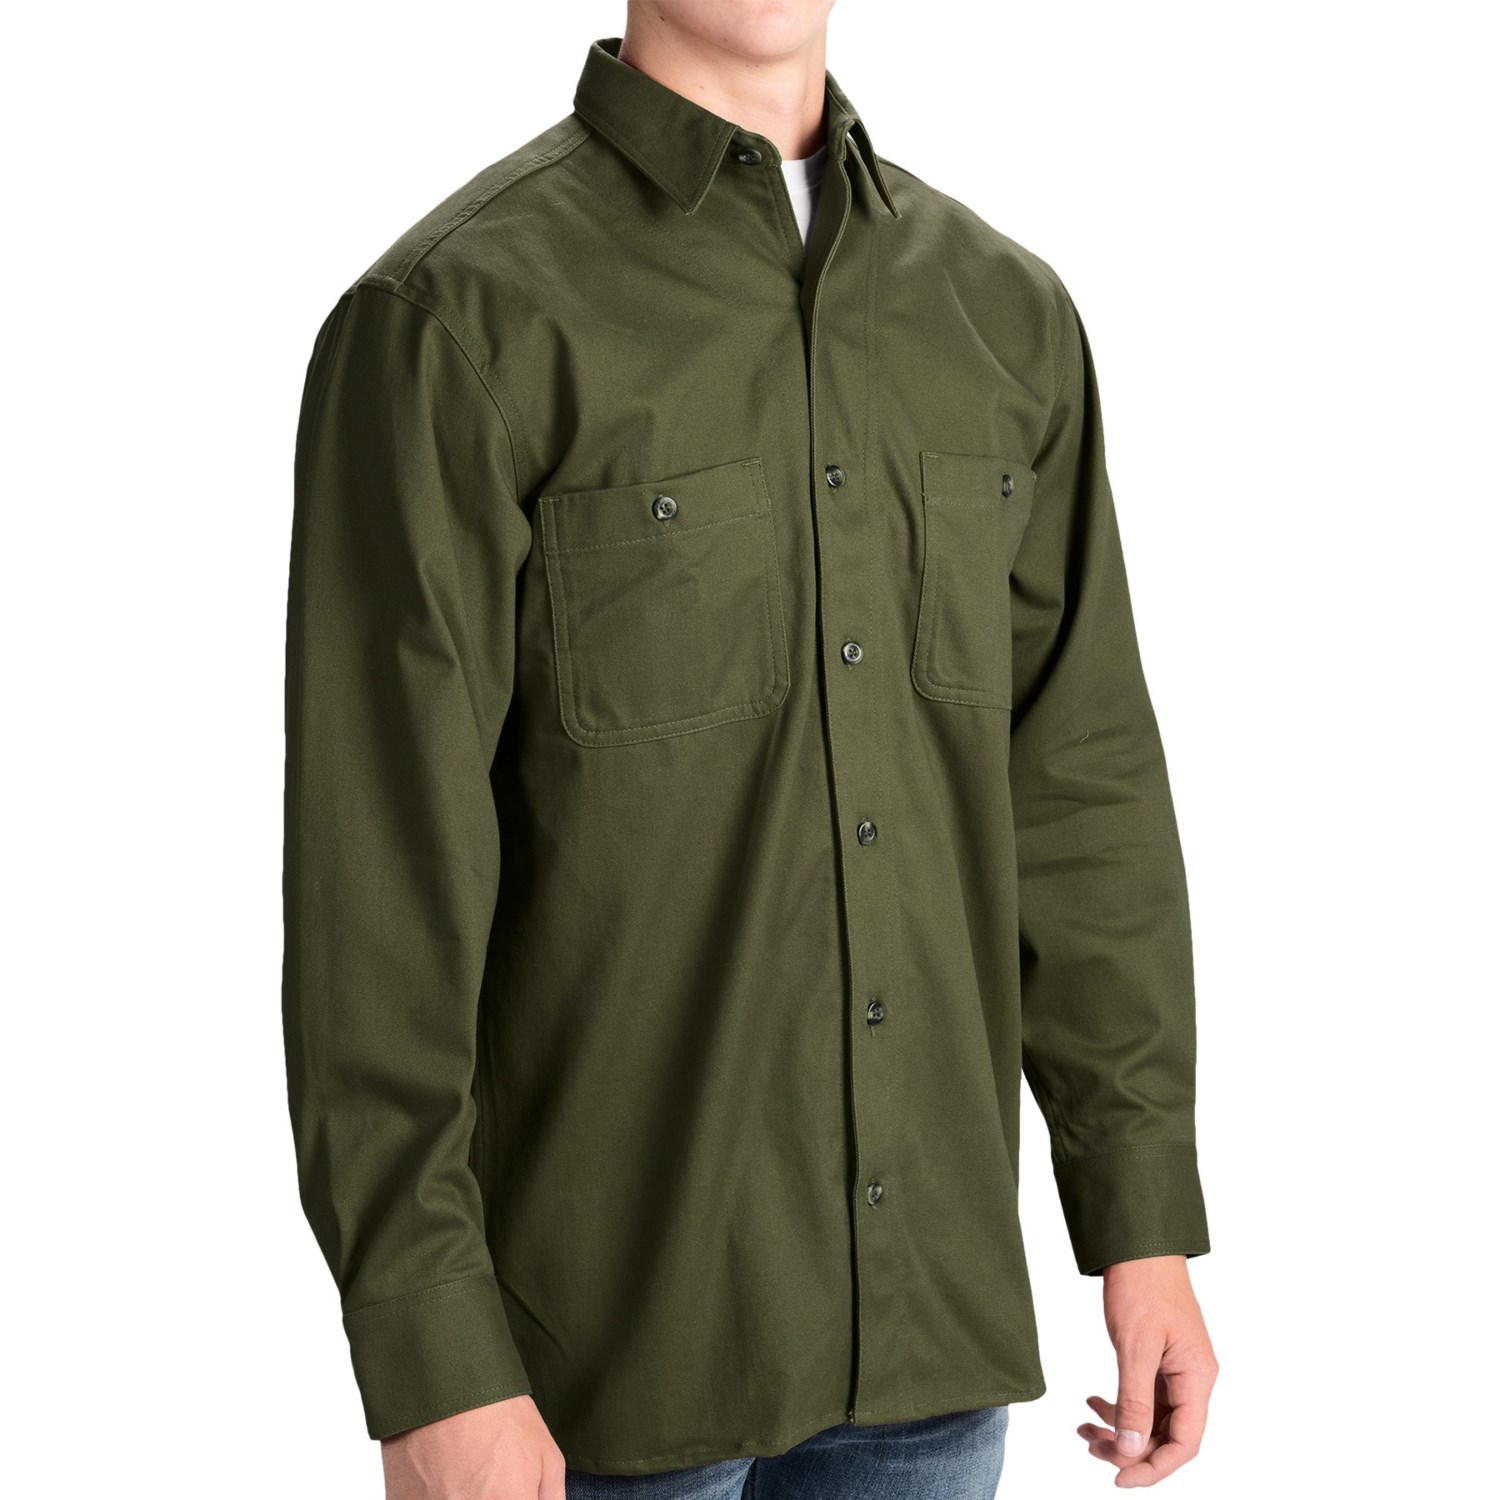 The TrueTimber® Poly Cotton Twill Button-Down Shirt for men blends the most popular premium materials for the best of both worlds. A cotton/polyester blend brings the comfort of a cotton t-shirt and the lightweight and fast-drying power of polyester/5(59).